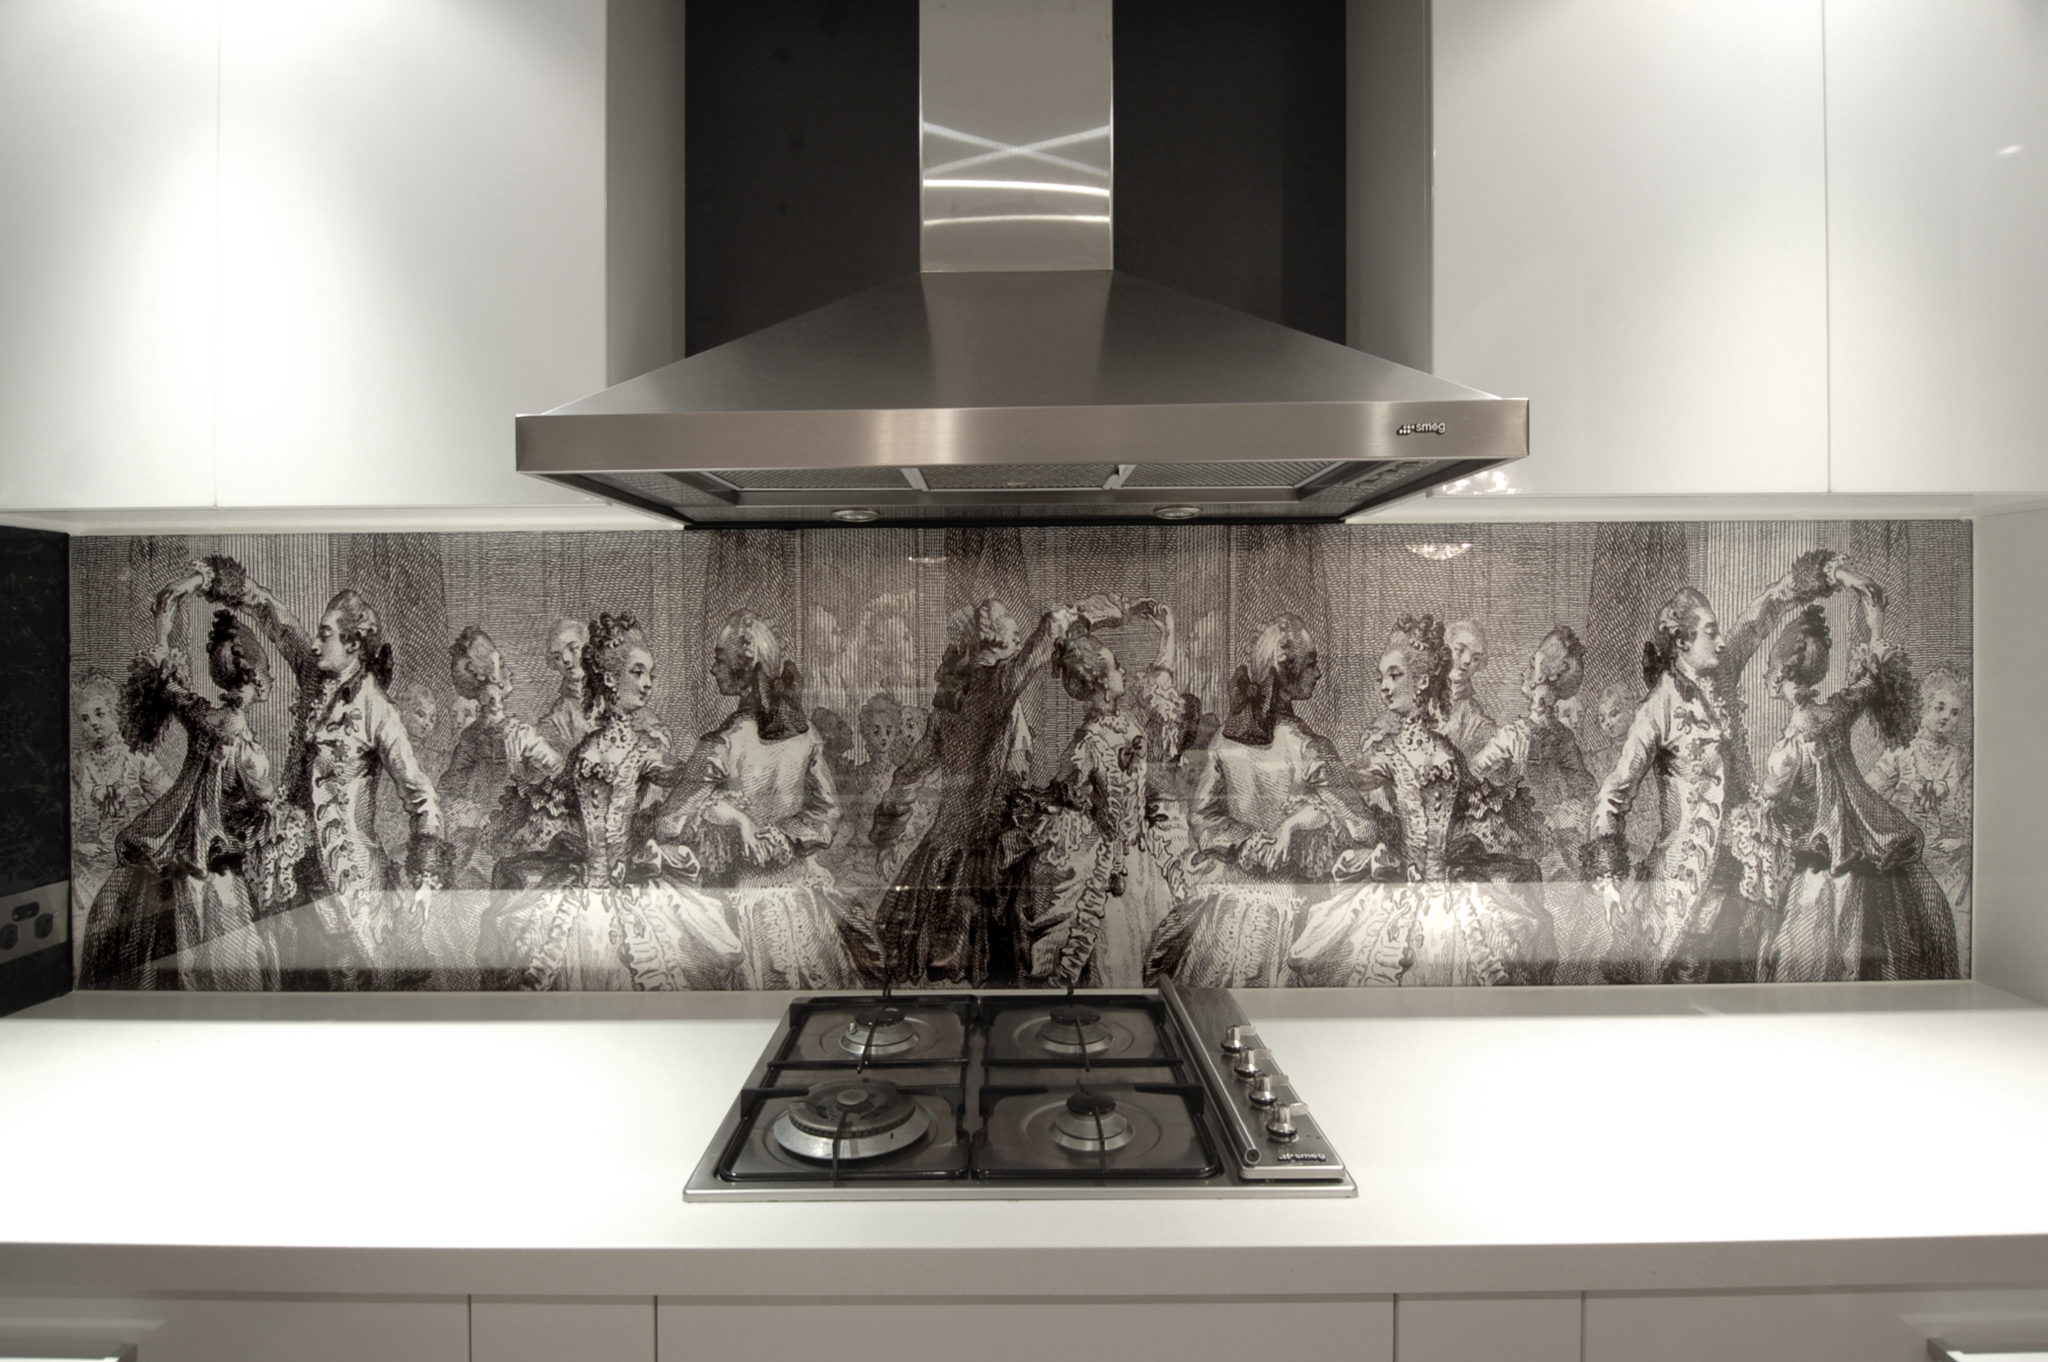 Have you ever seen a kitchen splashback like it?!